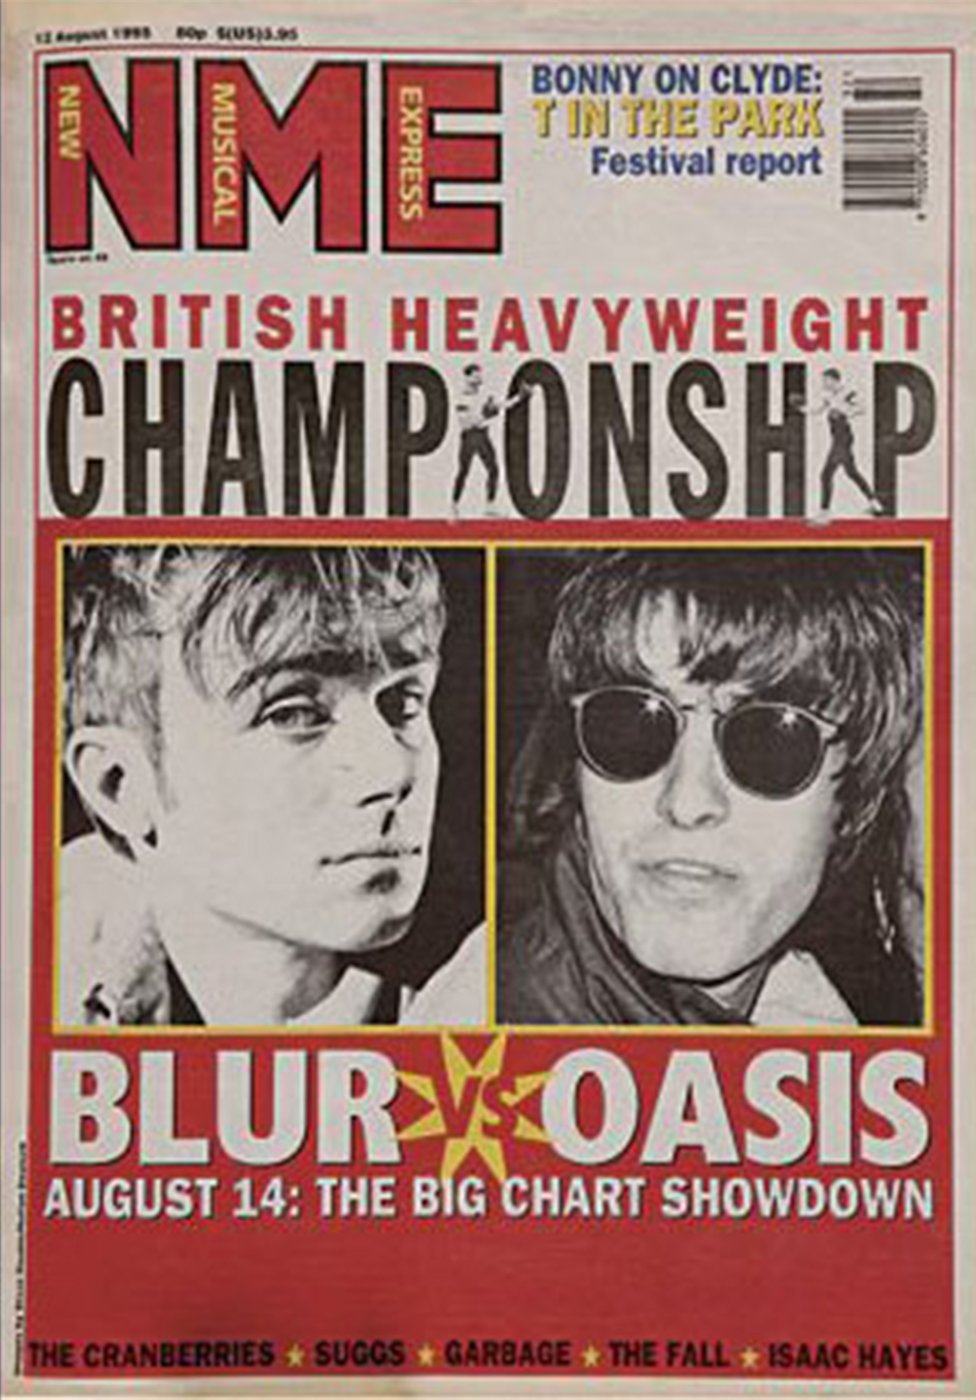 The NME's Blur vs Oasis cover